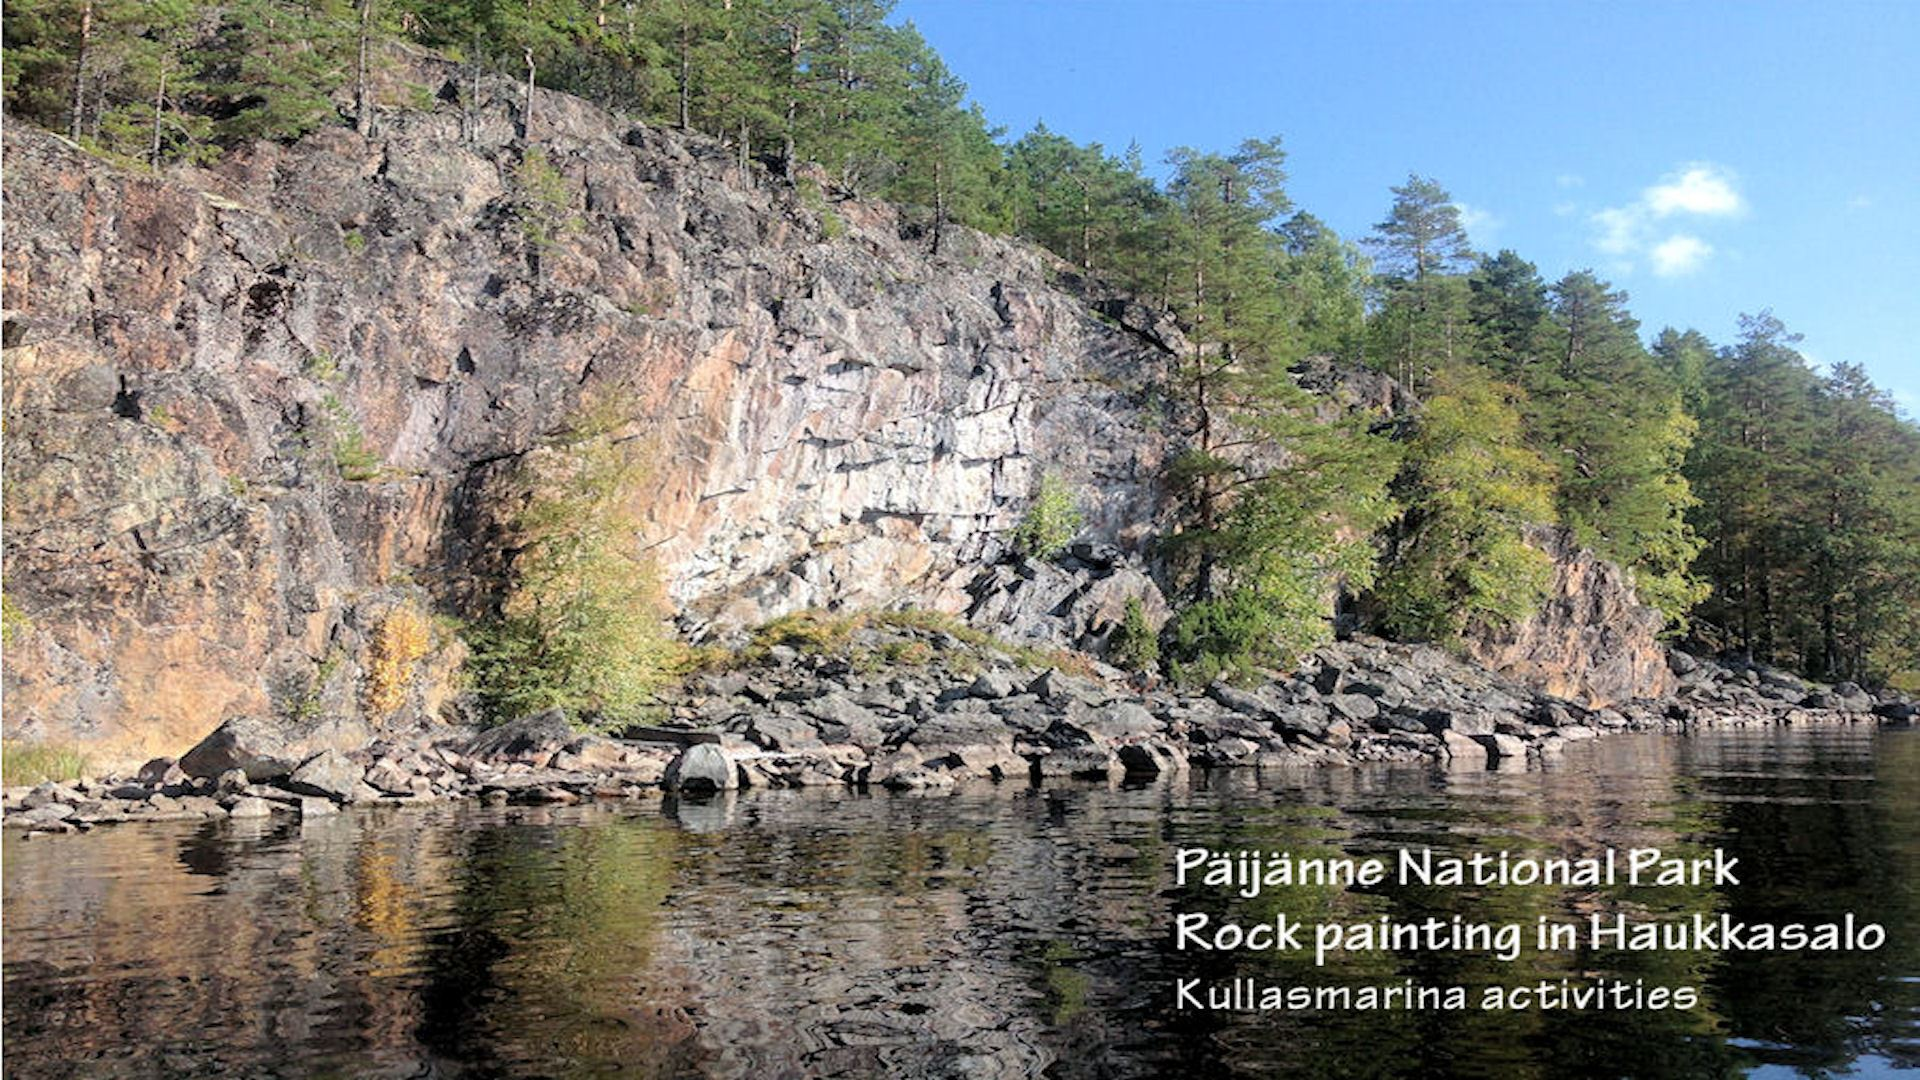 Boat trip to Haukkasaari rock paintings and Kelvenne island, Päijänne National Park | Kullasmarina